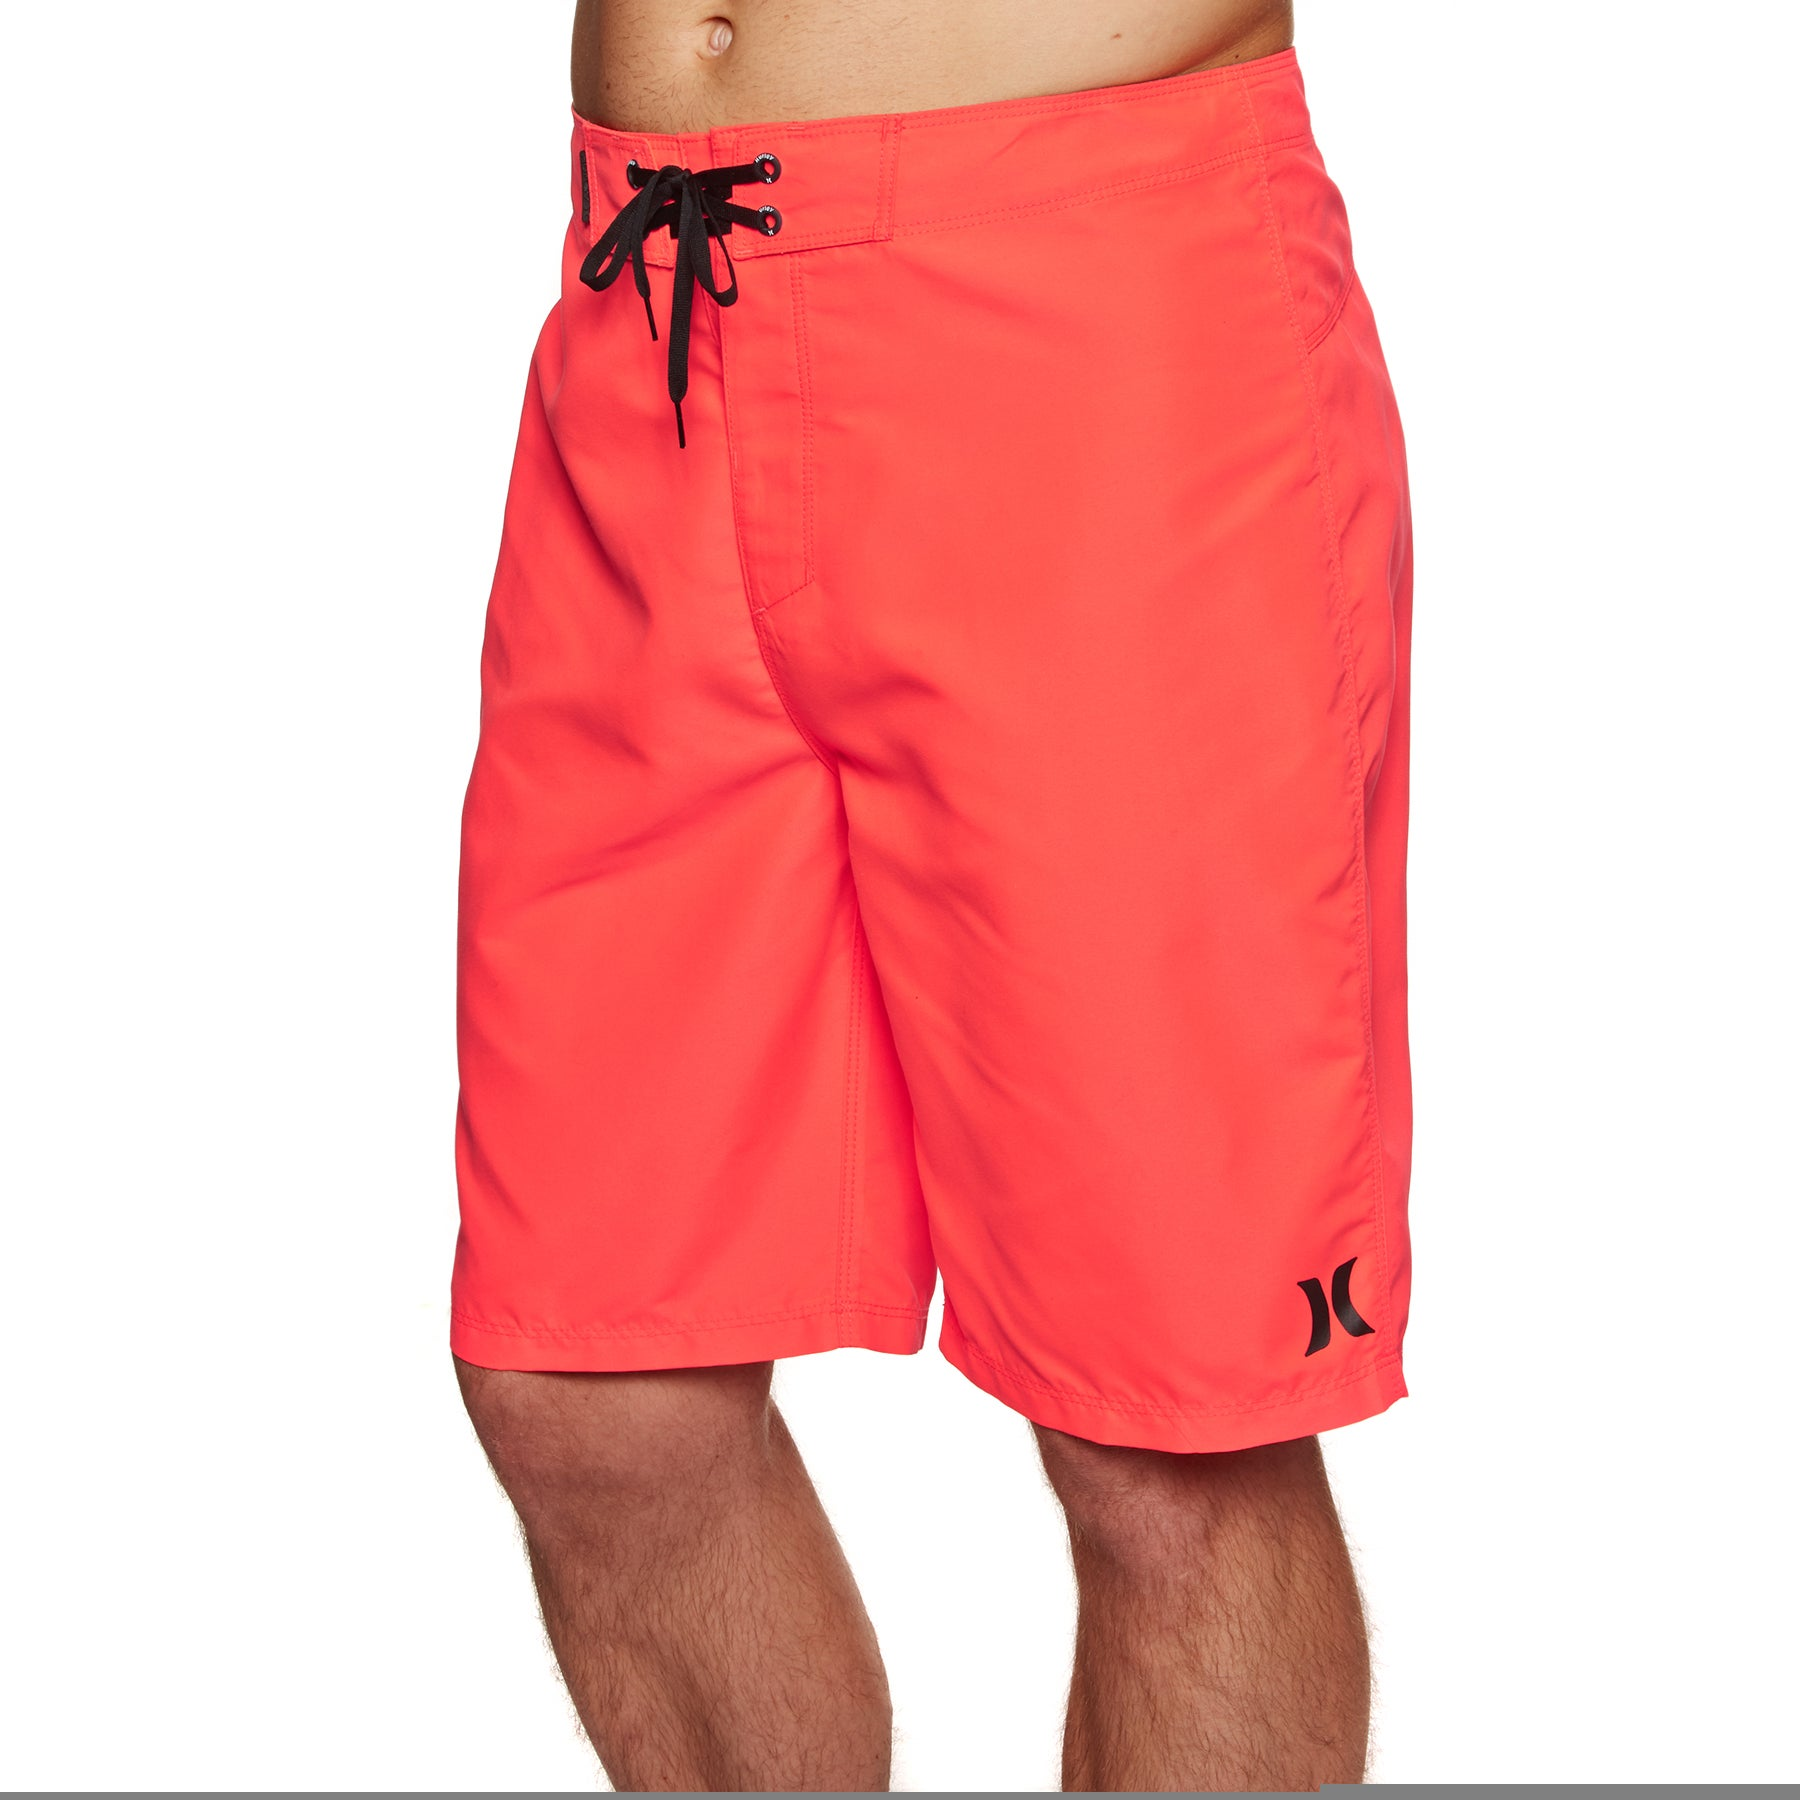 Hurley One & Only 2.0 21' Boardshorts - Bright Crimson